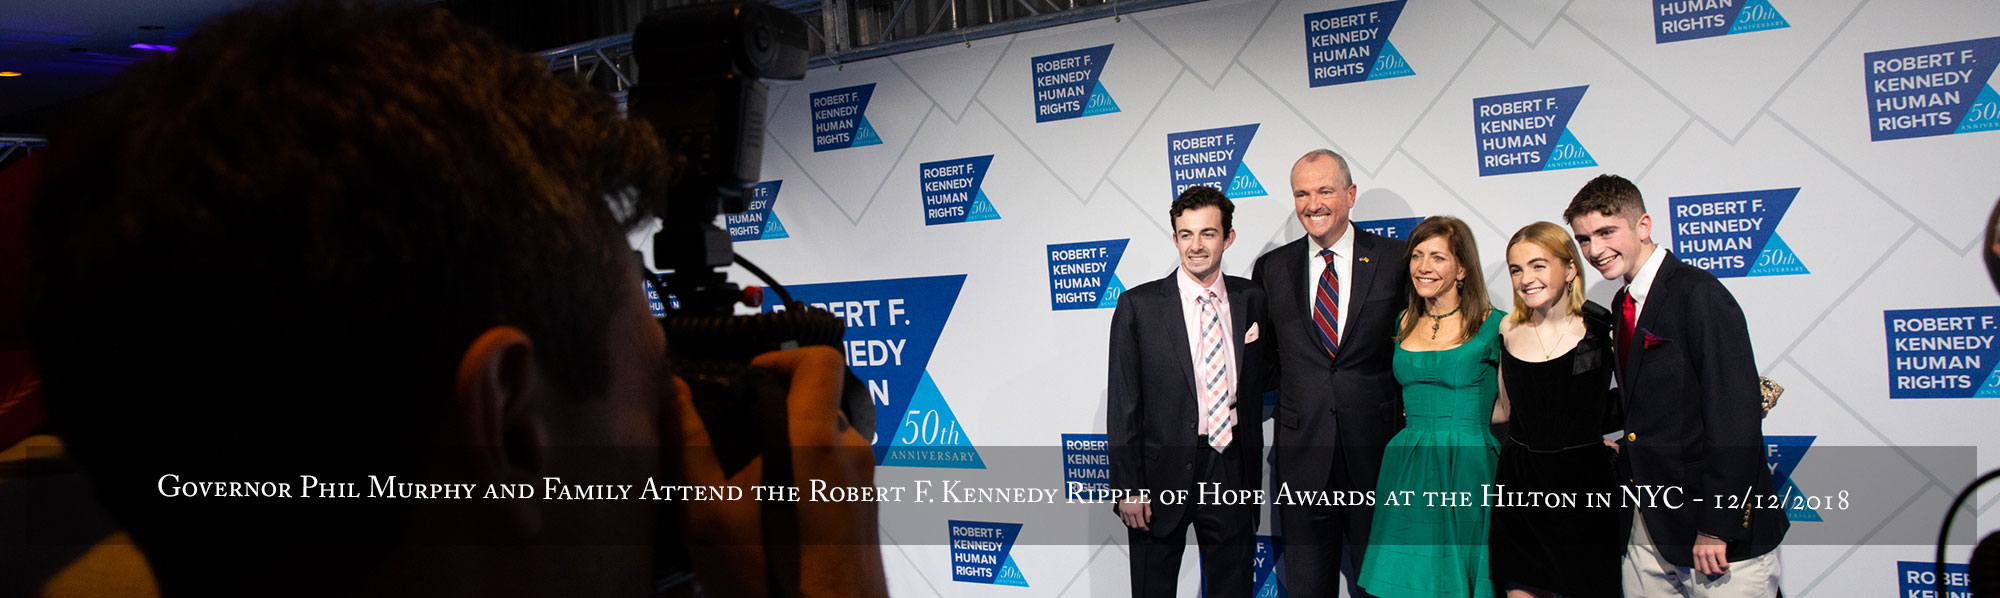 Governor Phil Murphy and family attend the Robert F. Kennedy Ripple of Hope Awards at the Hilton in New York City on December 12, 2018